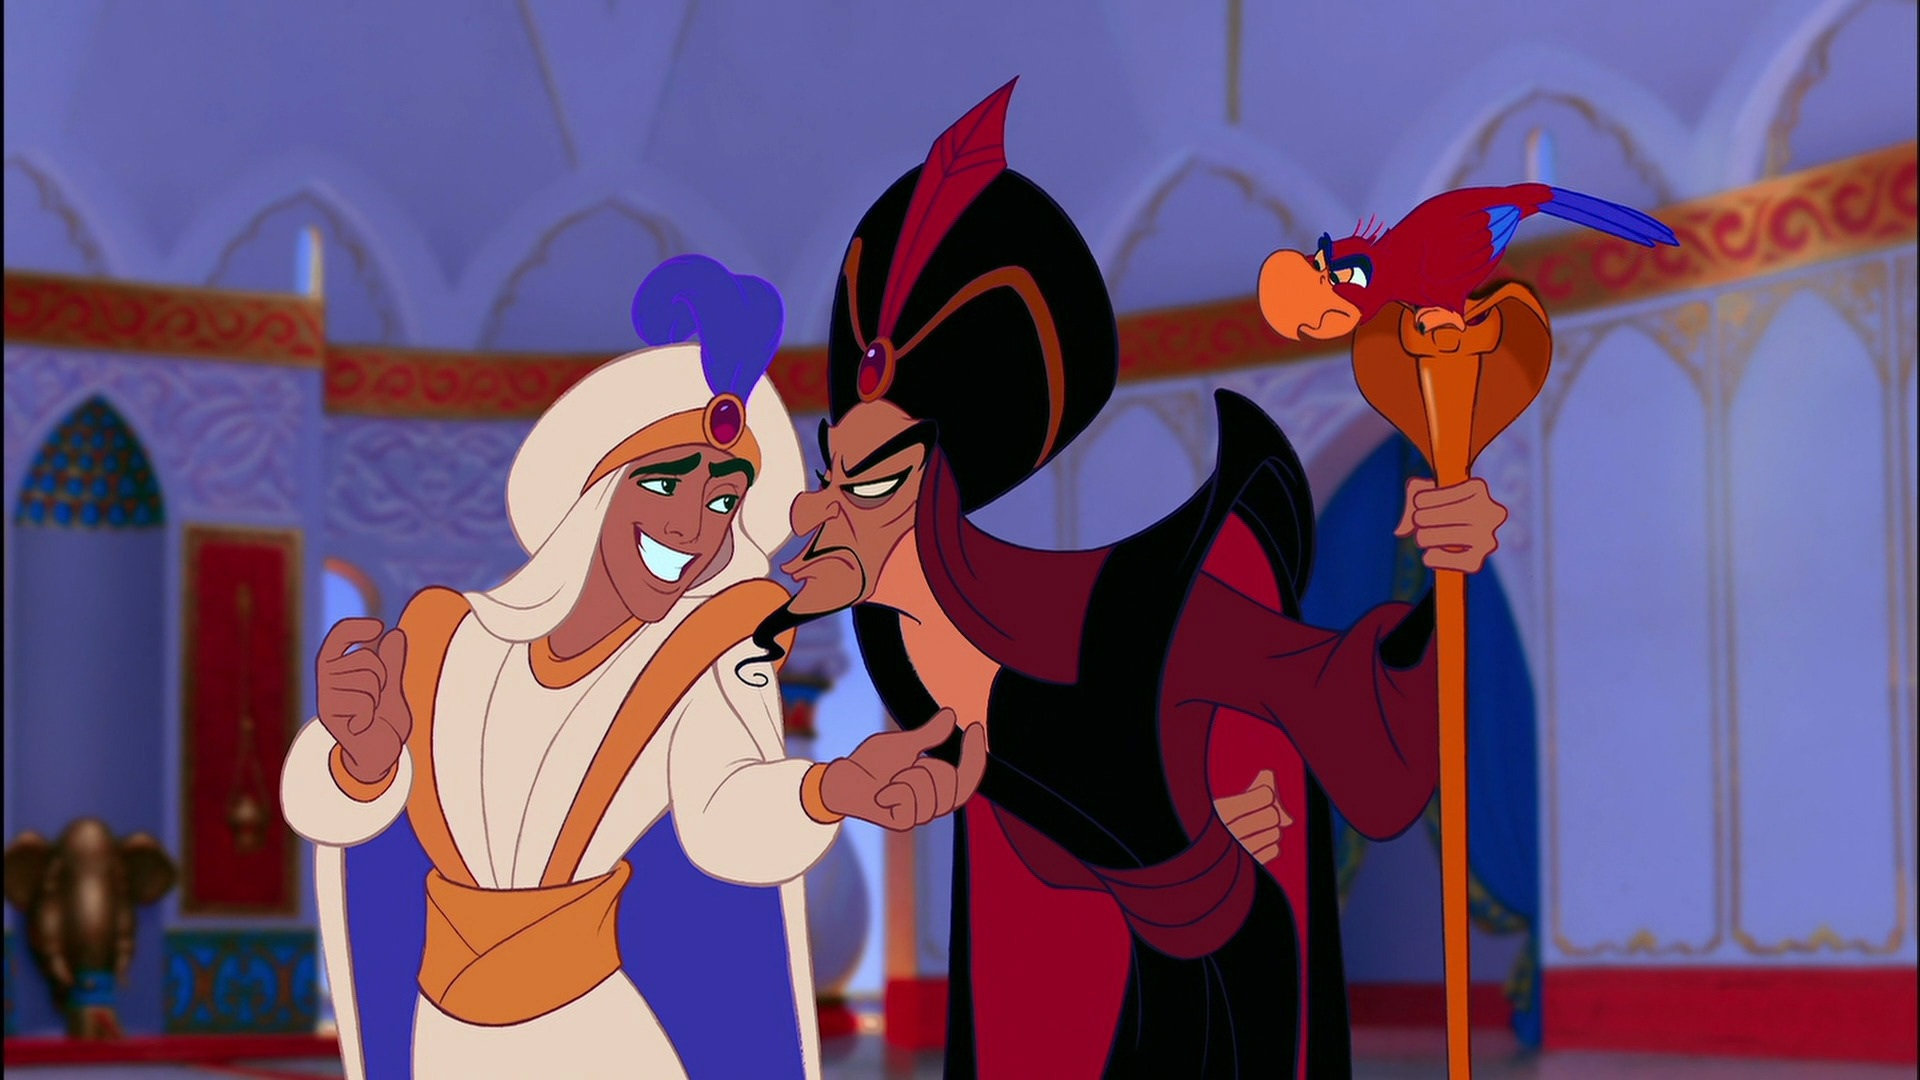 Jafar Wallpaper Jafar And Iago Meeting Prince